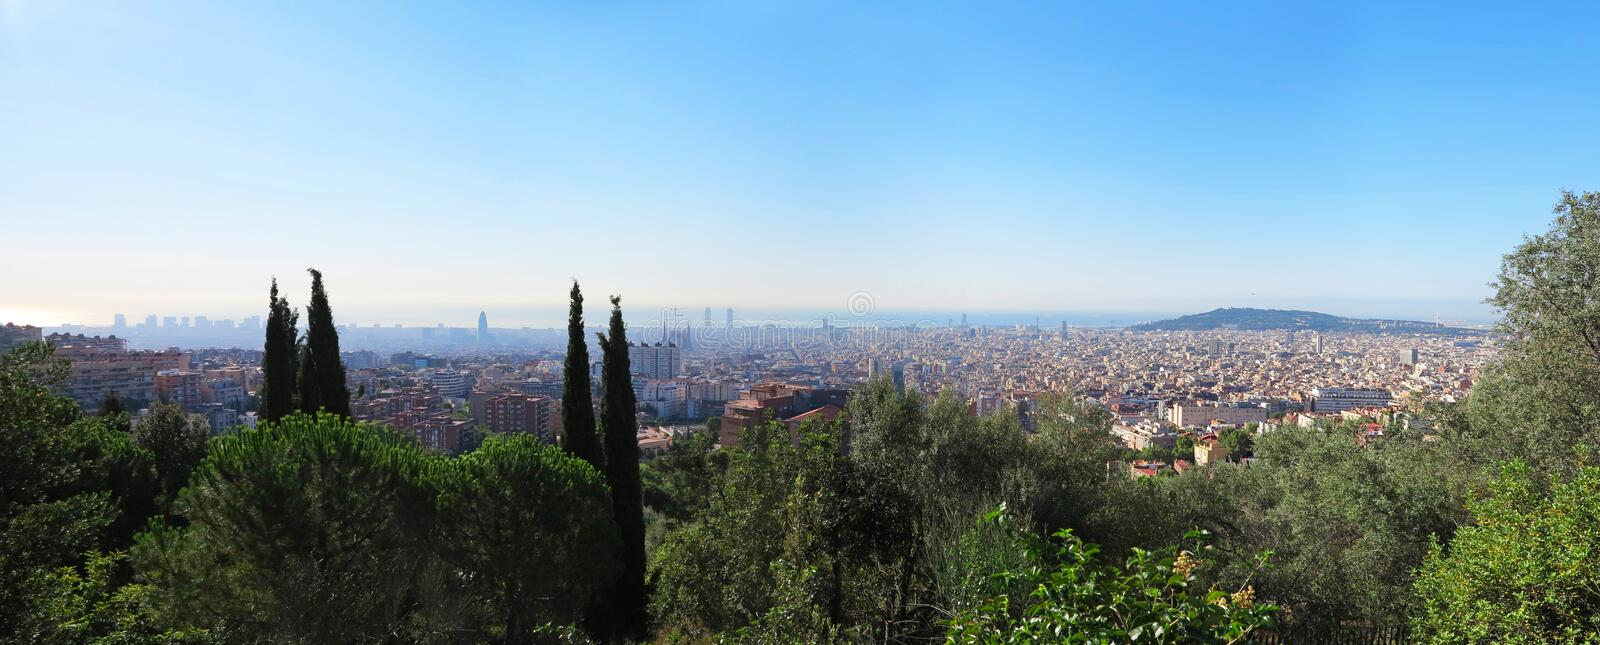 Panorama Barcelona. Panorama from Barcelona City from Park Guell by Gaudi, Spain royalty free stock photos